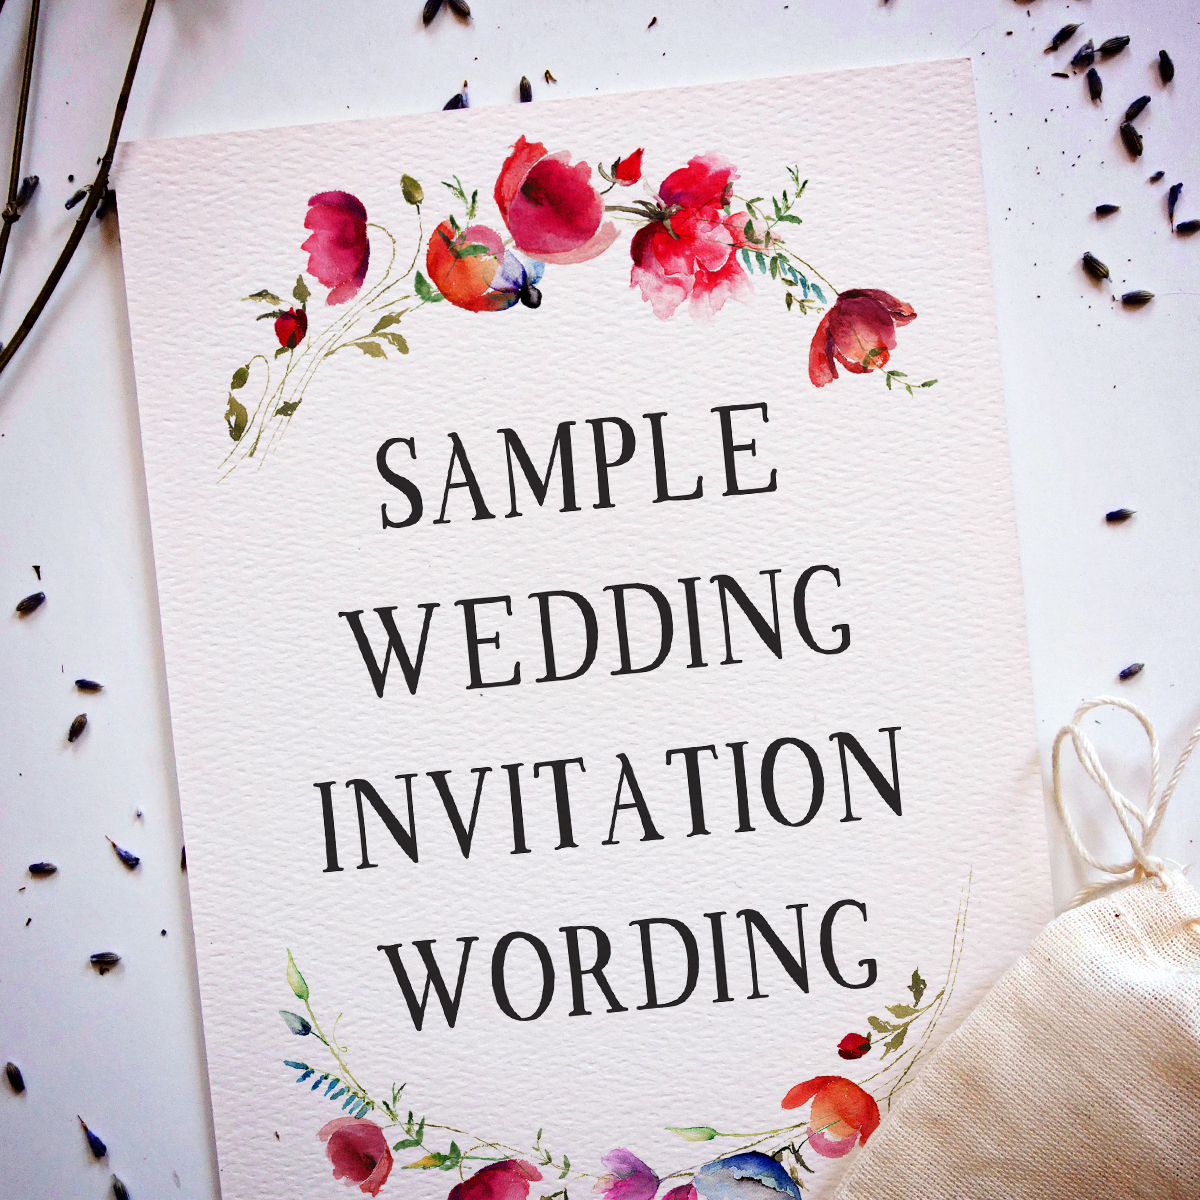 Wedding Invitation That Says Sample Wording